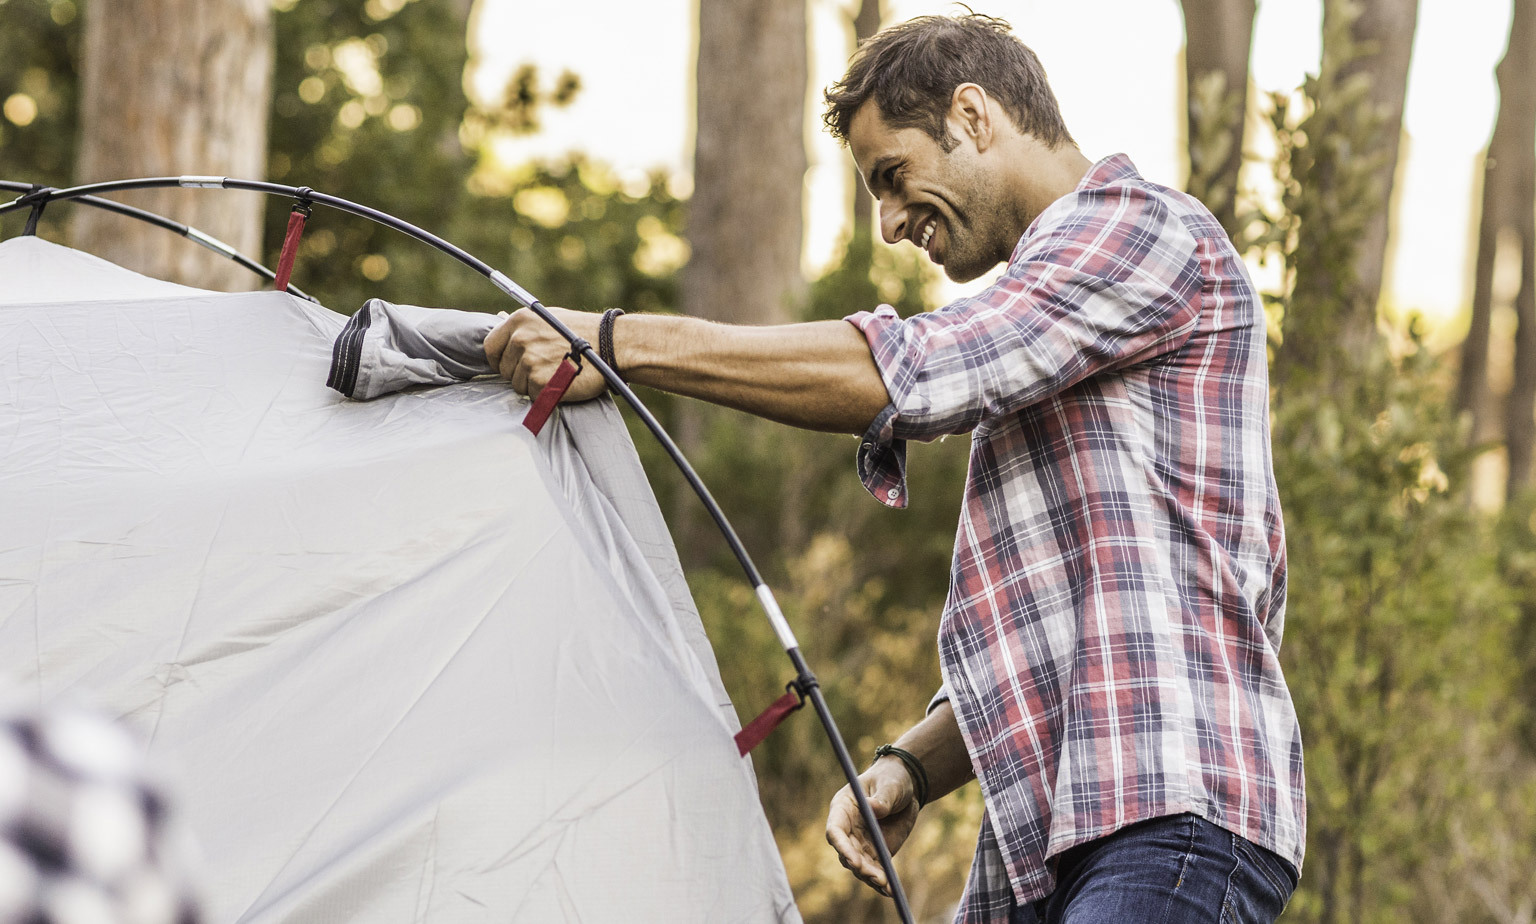 Camping Tools Sale